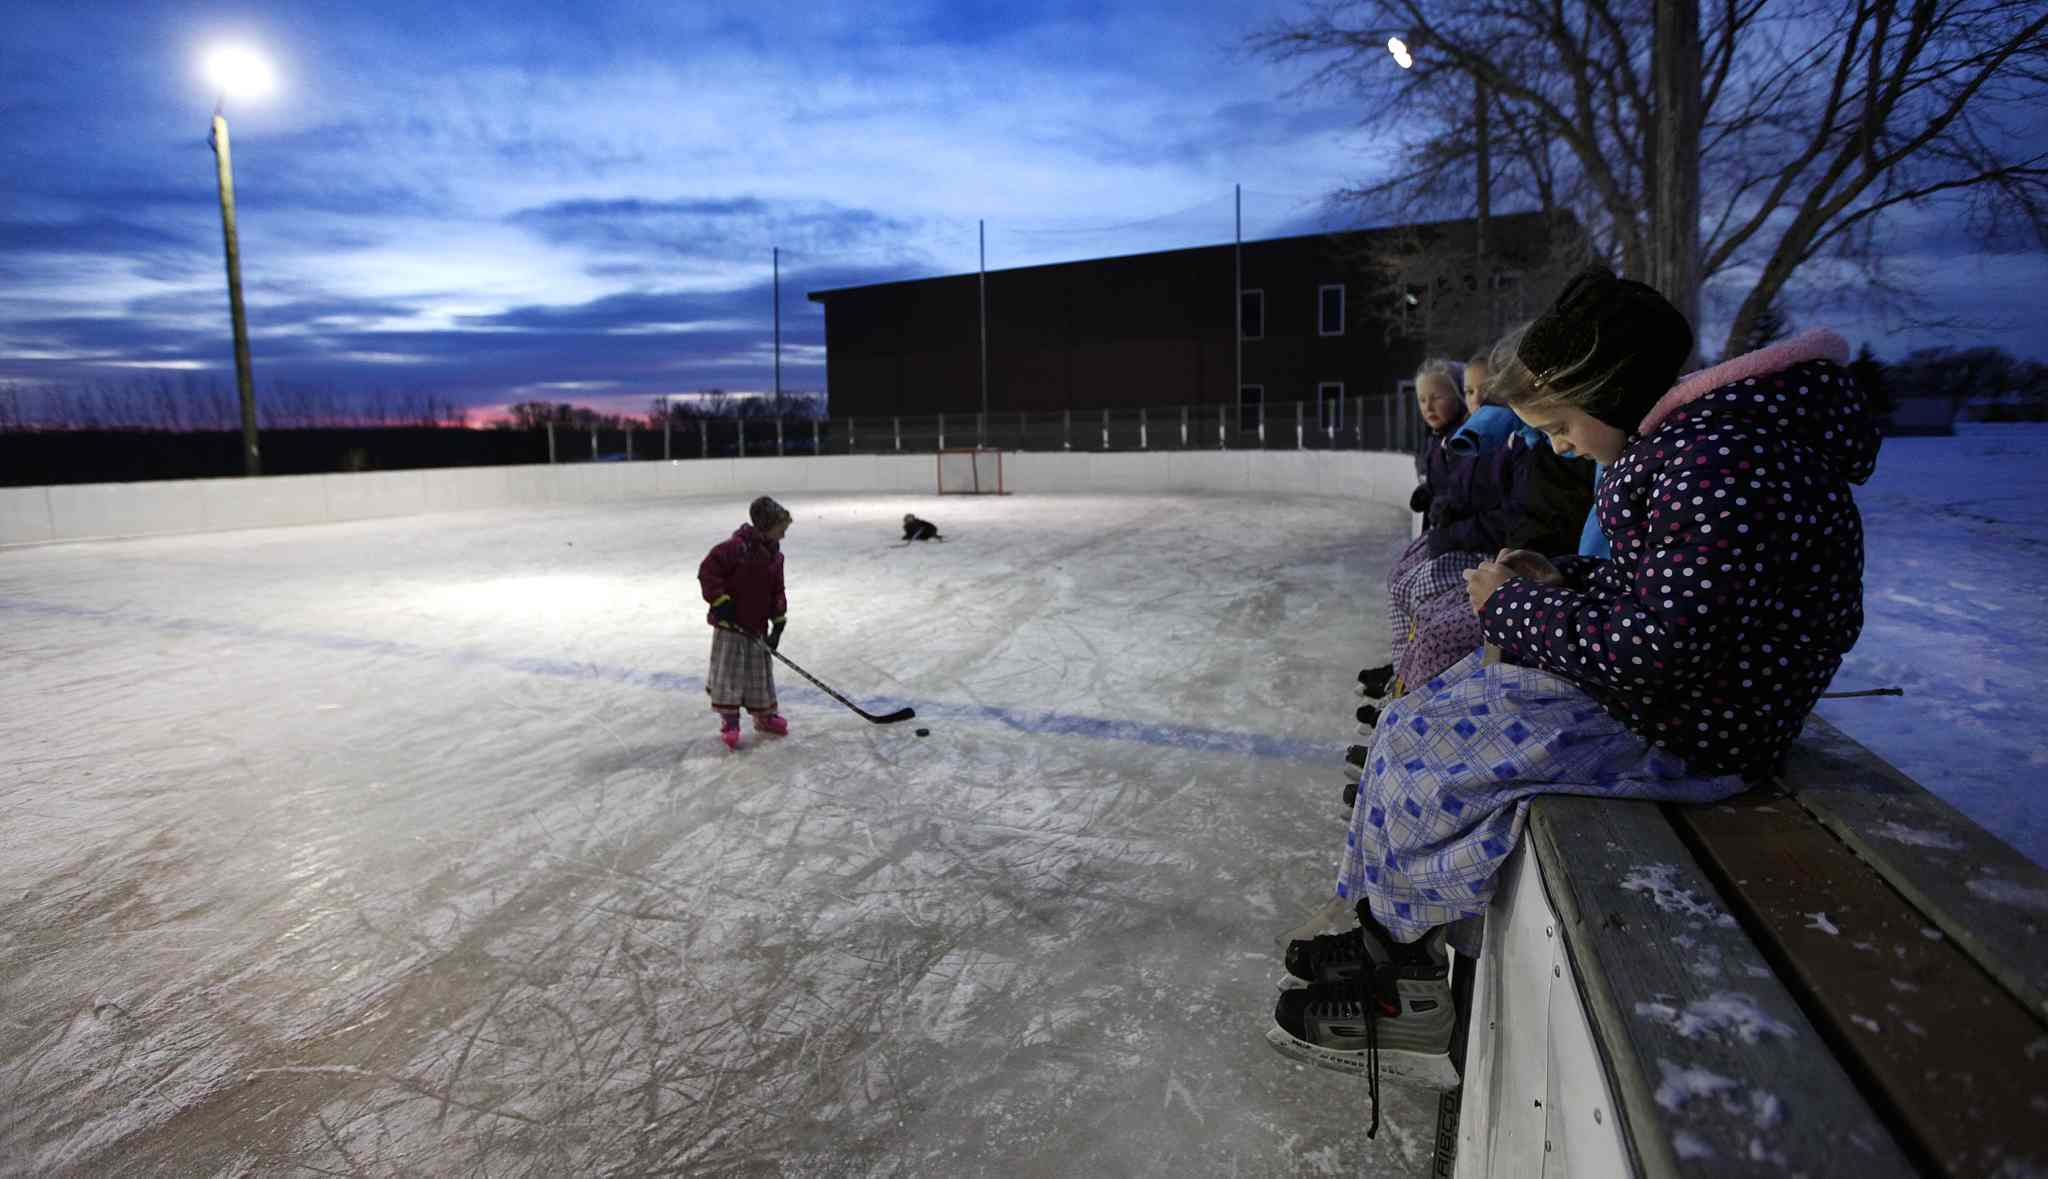 Women and children at the Baker Community gather on the ice after school.  (Phil Hossack / Winnipeg Free Press)